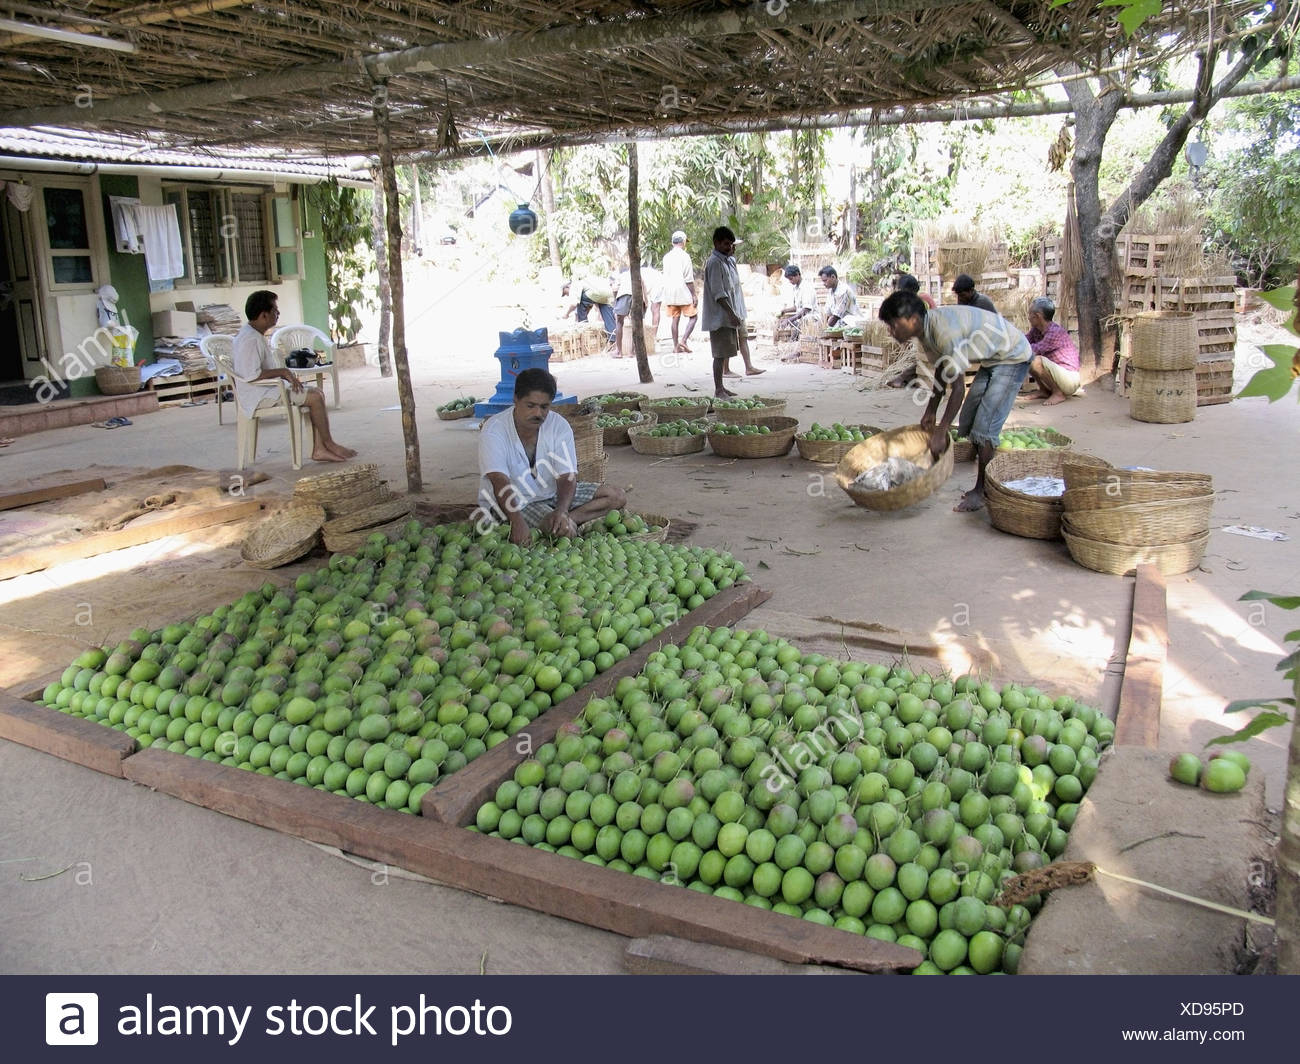 Workers are making categorization of the Mangoes for packing - Stock Image